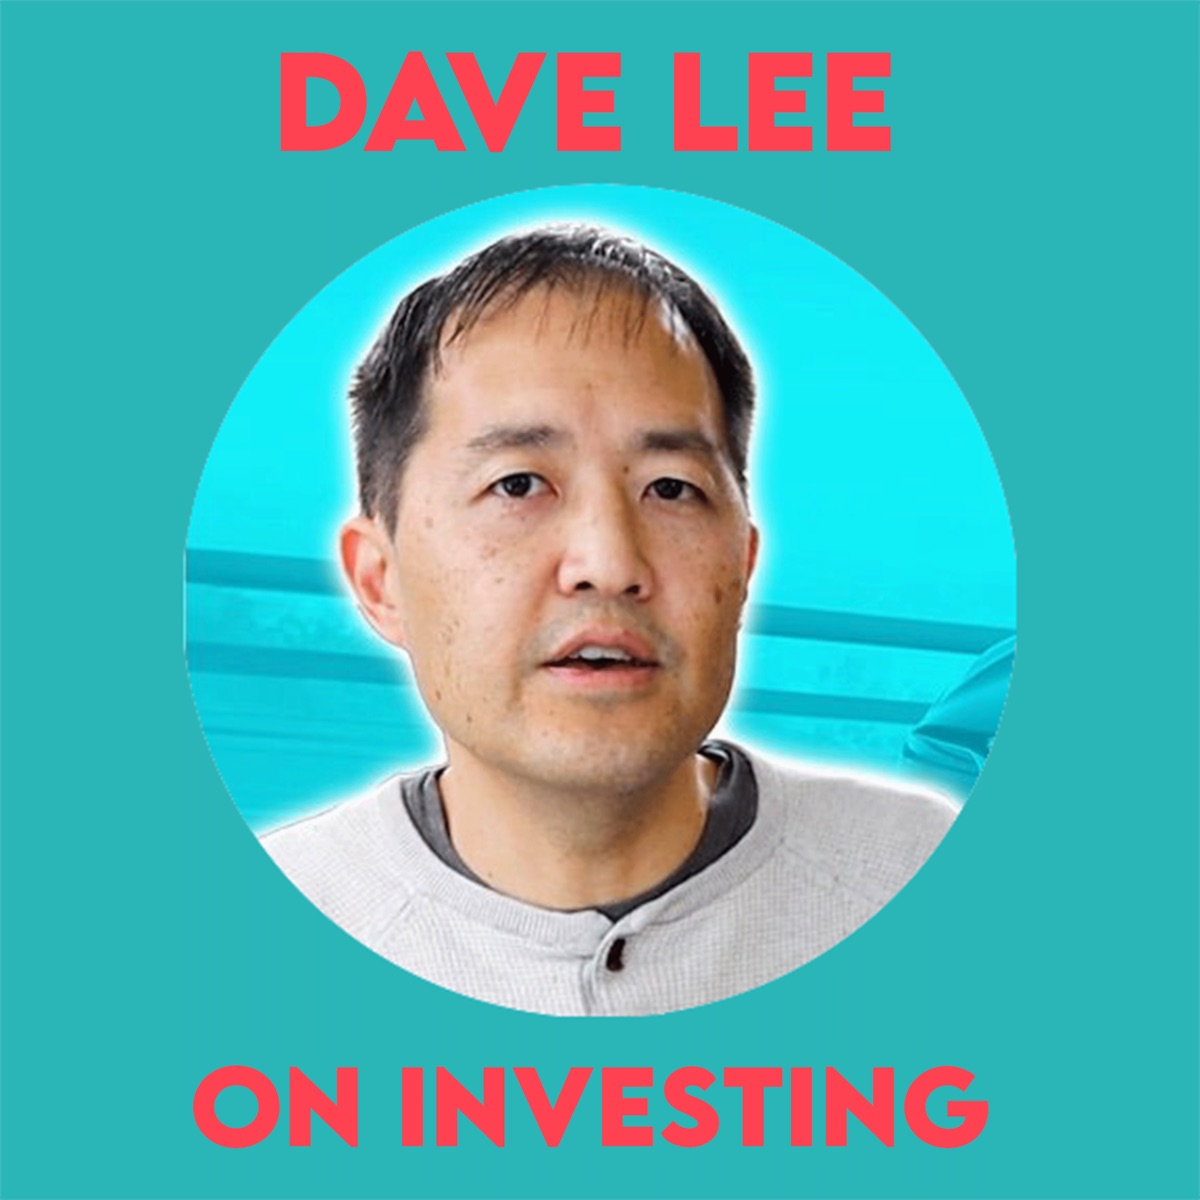 Dave Lee on Investing